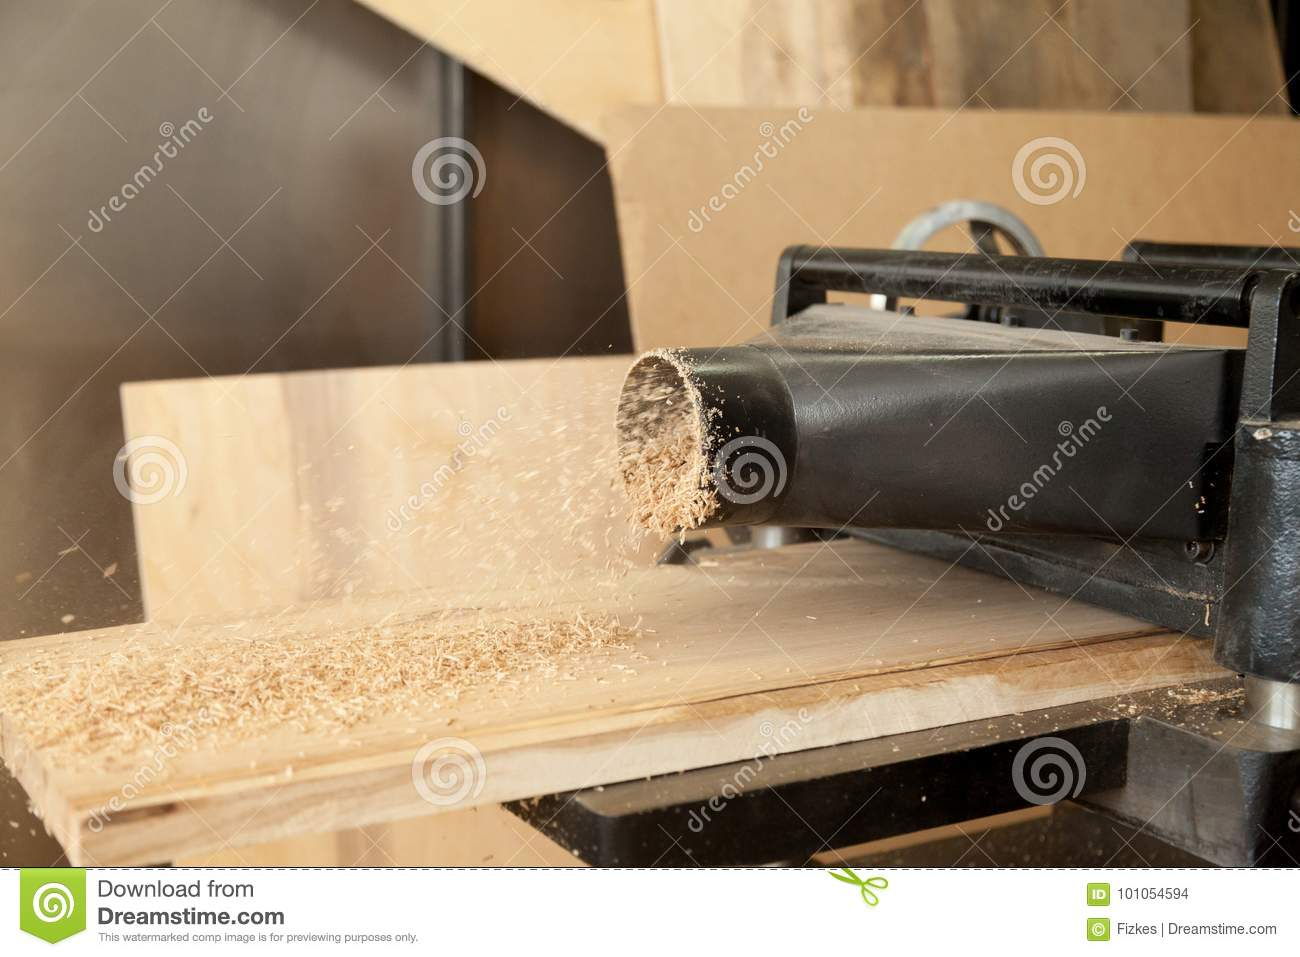 Planer Machine Reduce Wooden Board Thickness Stock Photo - Image of